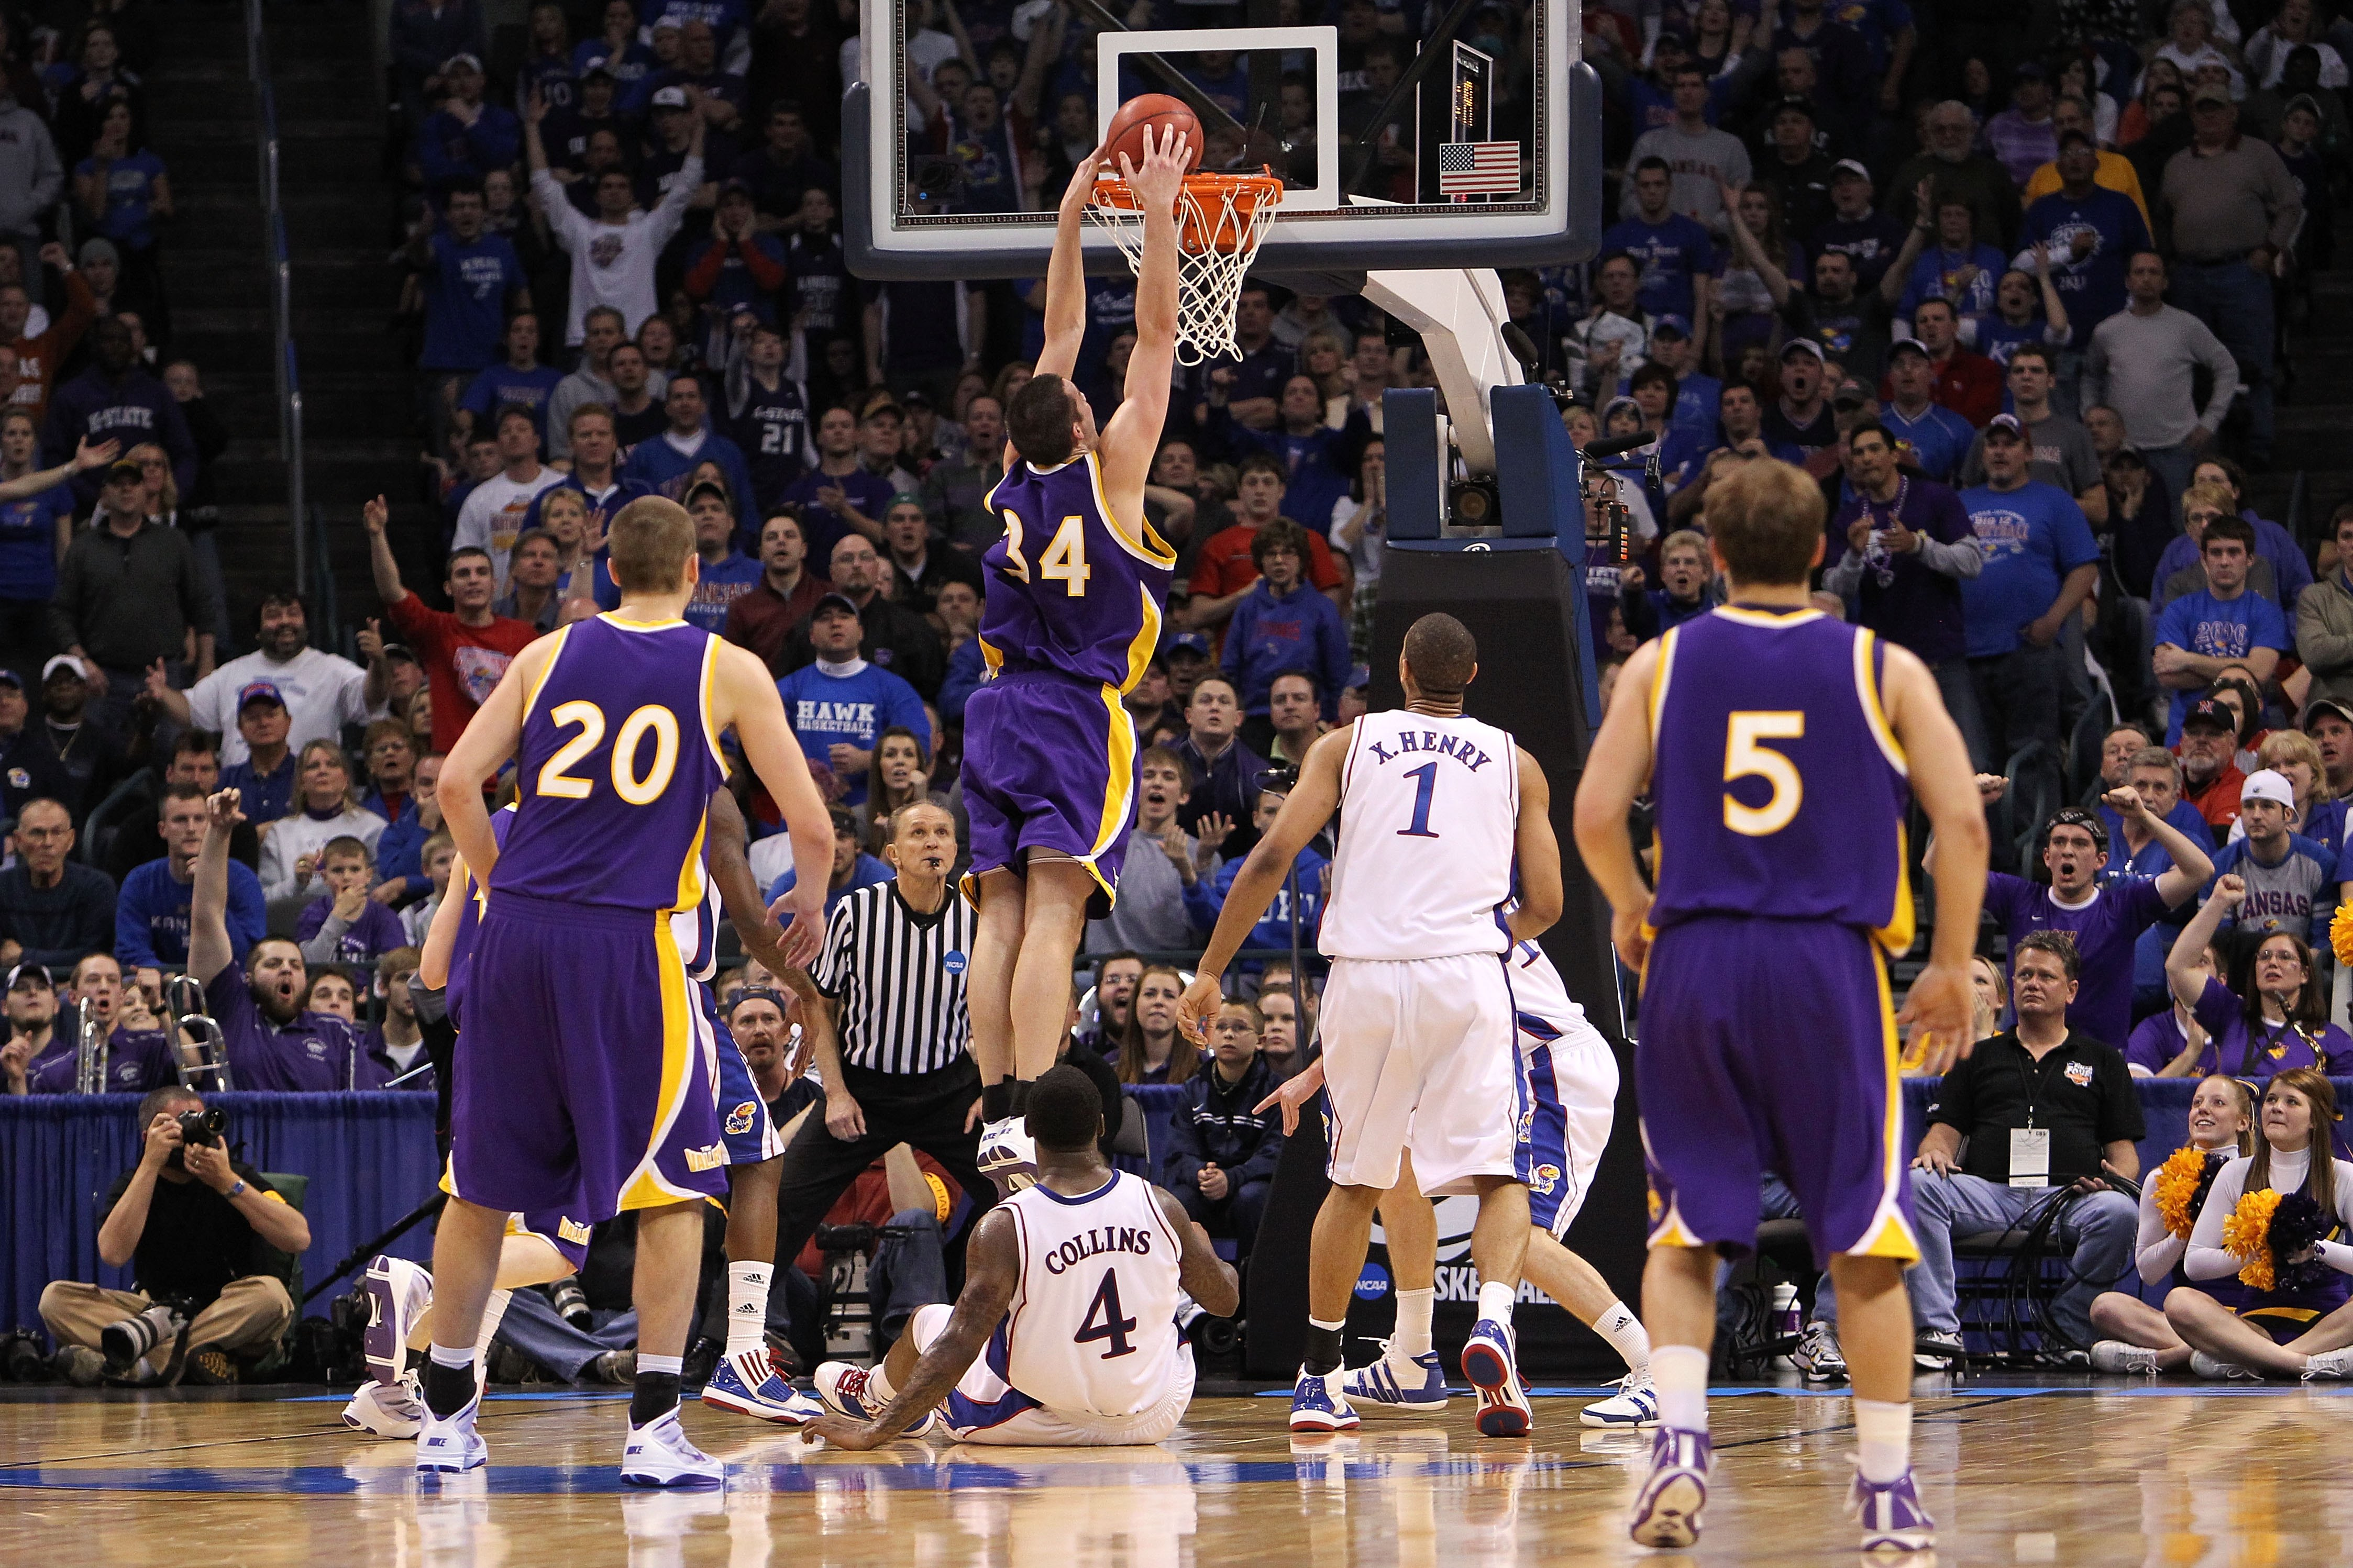 OKLAHOMA CITY - MARCH 20:  Adam Koch #34 the Northern Iowa Panthers dunks against the Kansas Jayhawks during the second round of the 2010 NCAA men's basketball tournament at Ford Center on March 20, 2010 in Oklahoma City, Oklahoma.  (Photo by Ronald Marti